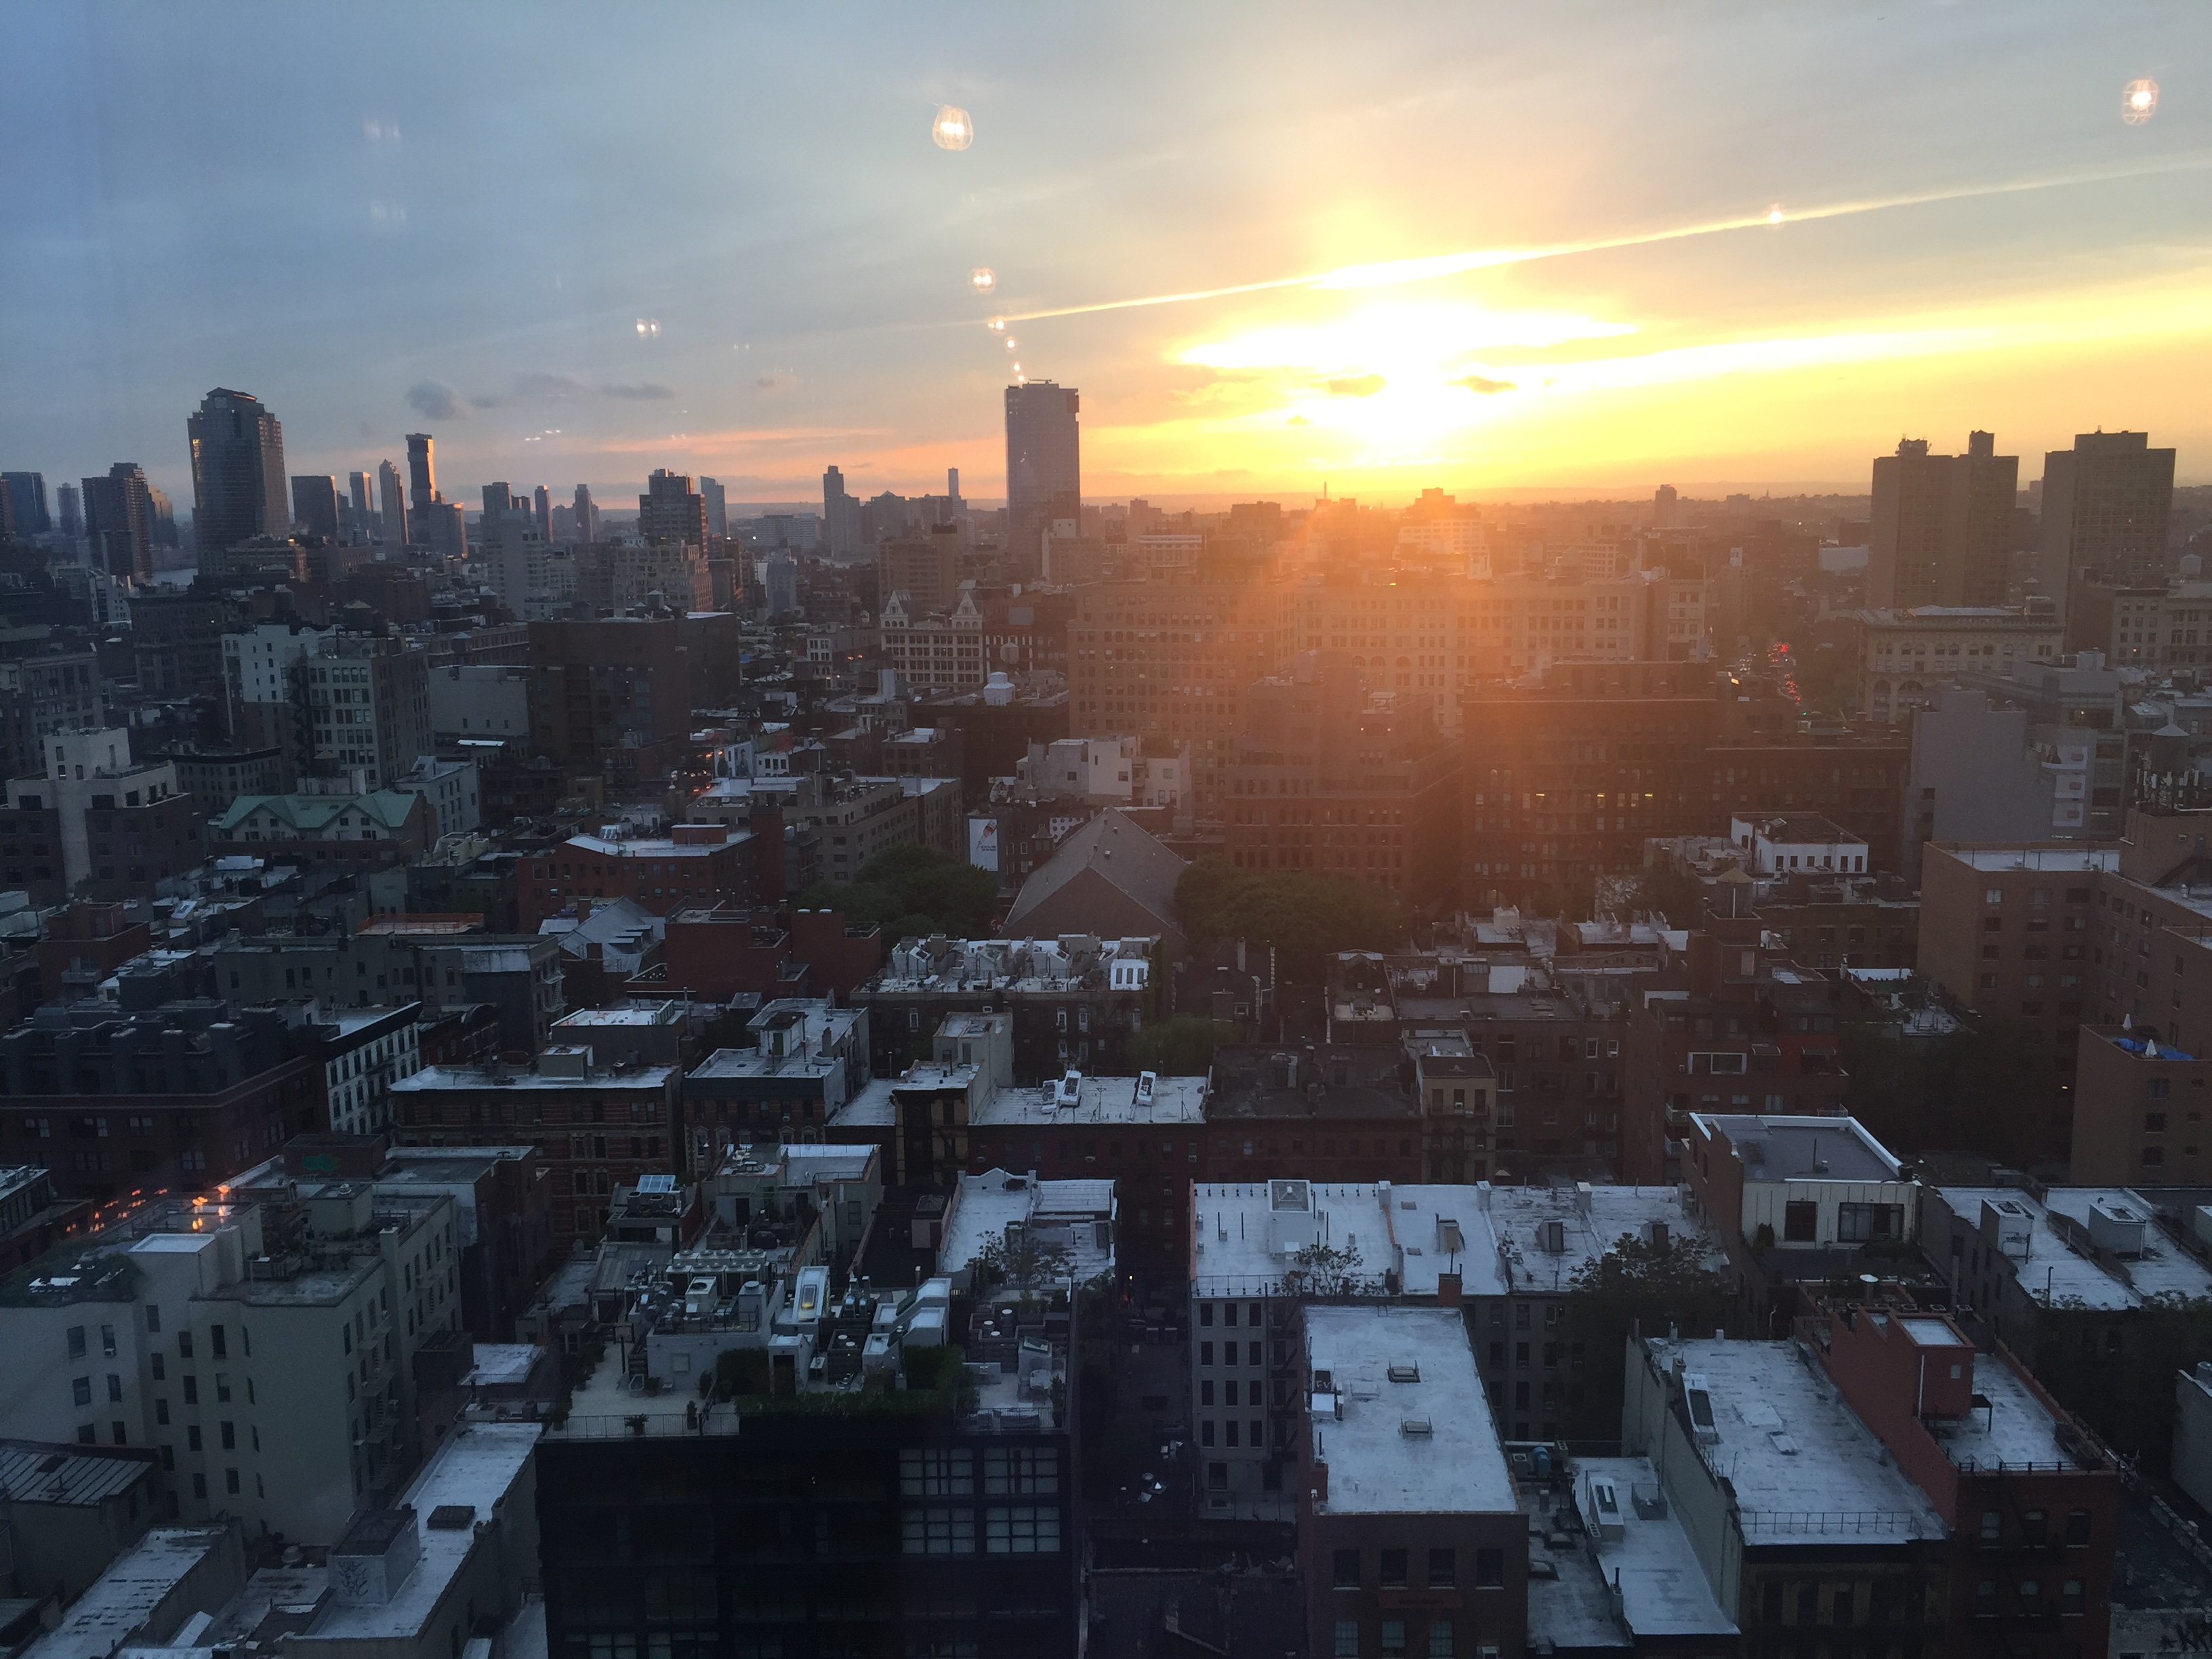 Sunset, seen from 215 Chrystie. Notice the shine on the URL Harborside tower in Jersey City. Photo by Evan Bindelglass, taken on iPhone 6